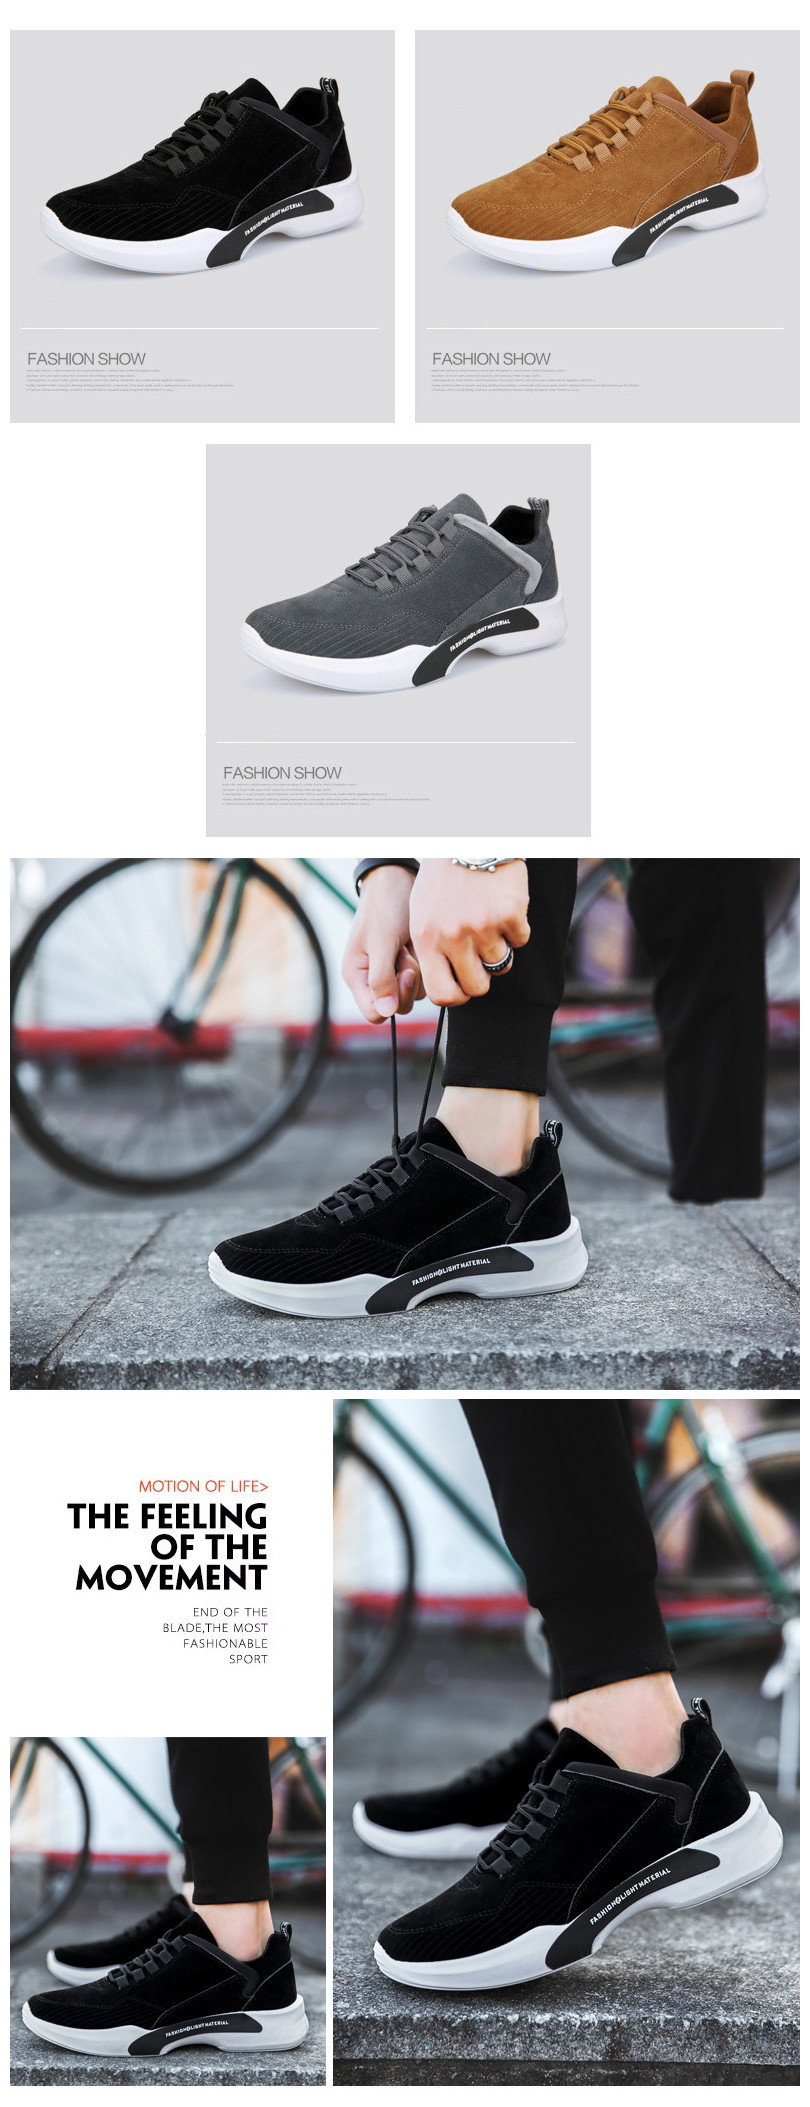 Hot Sale Cheapest All Match Skate Board Casual Shoes Fashion Sport Sneakers Shoes For Men